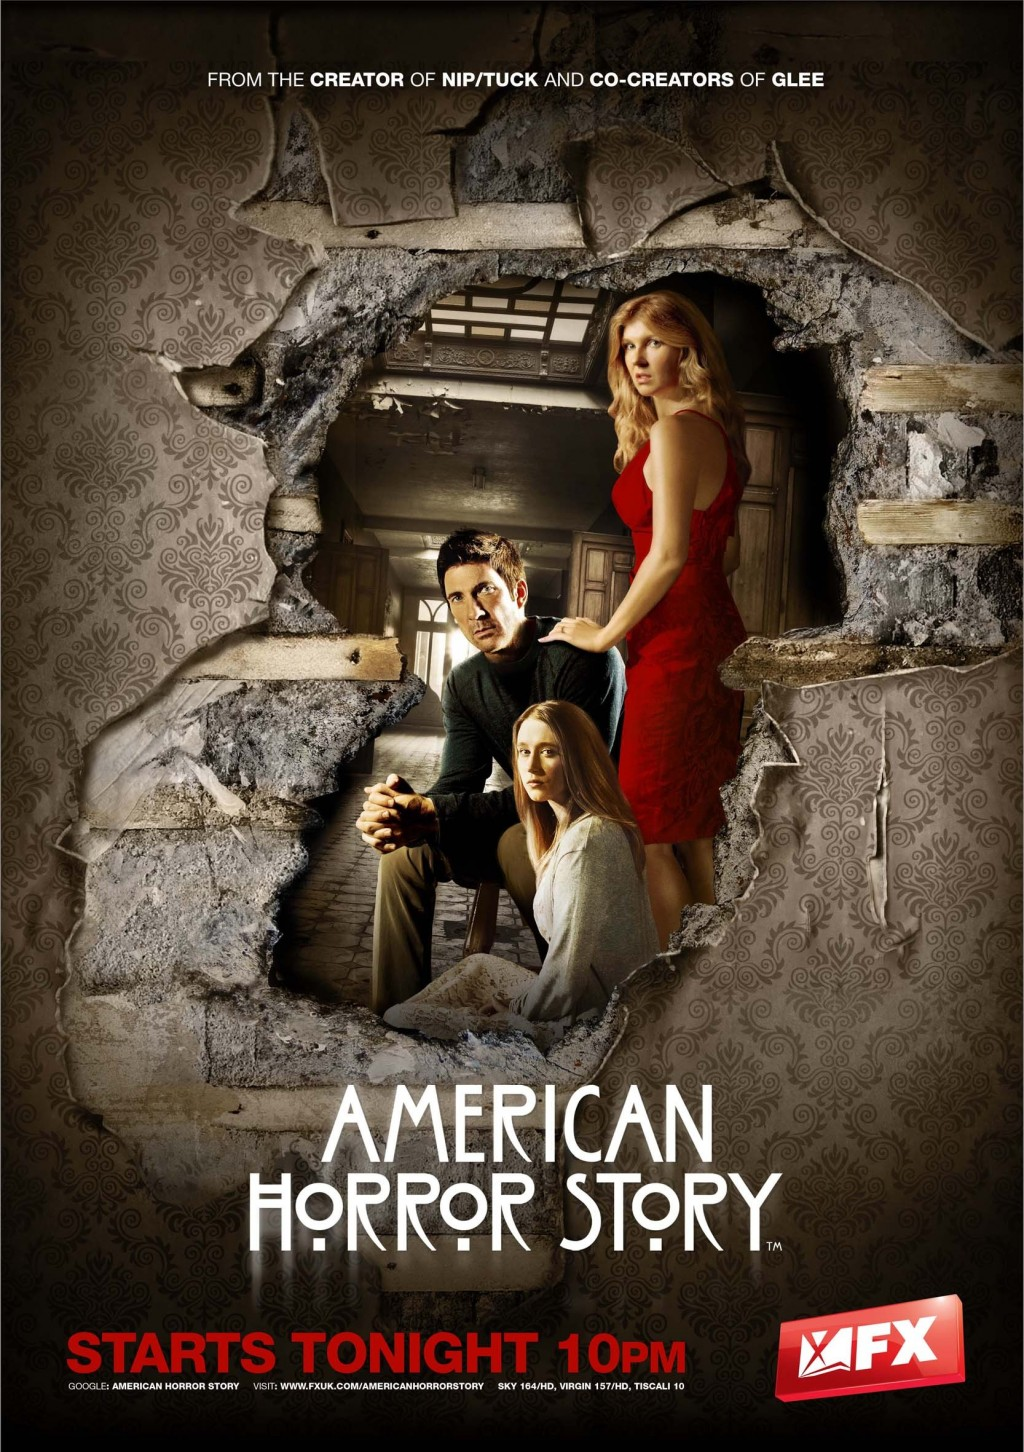 7 Creepy Shows Like American Horror Story That Will